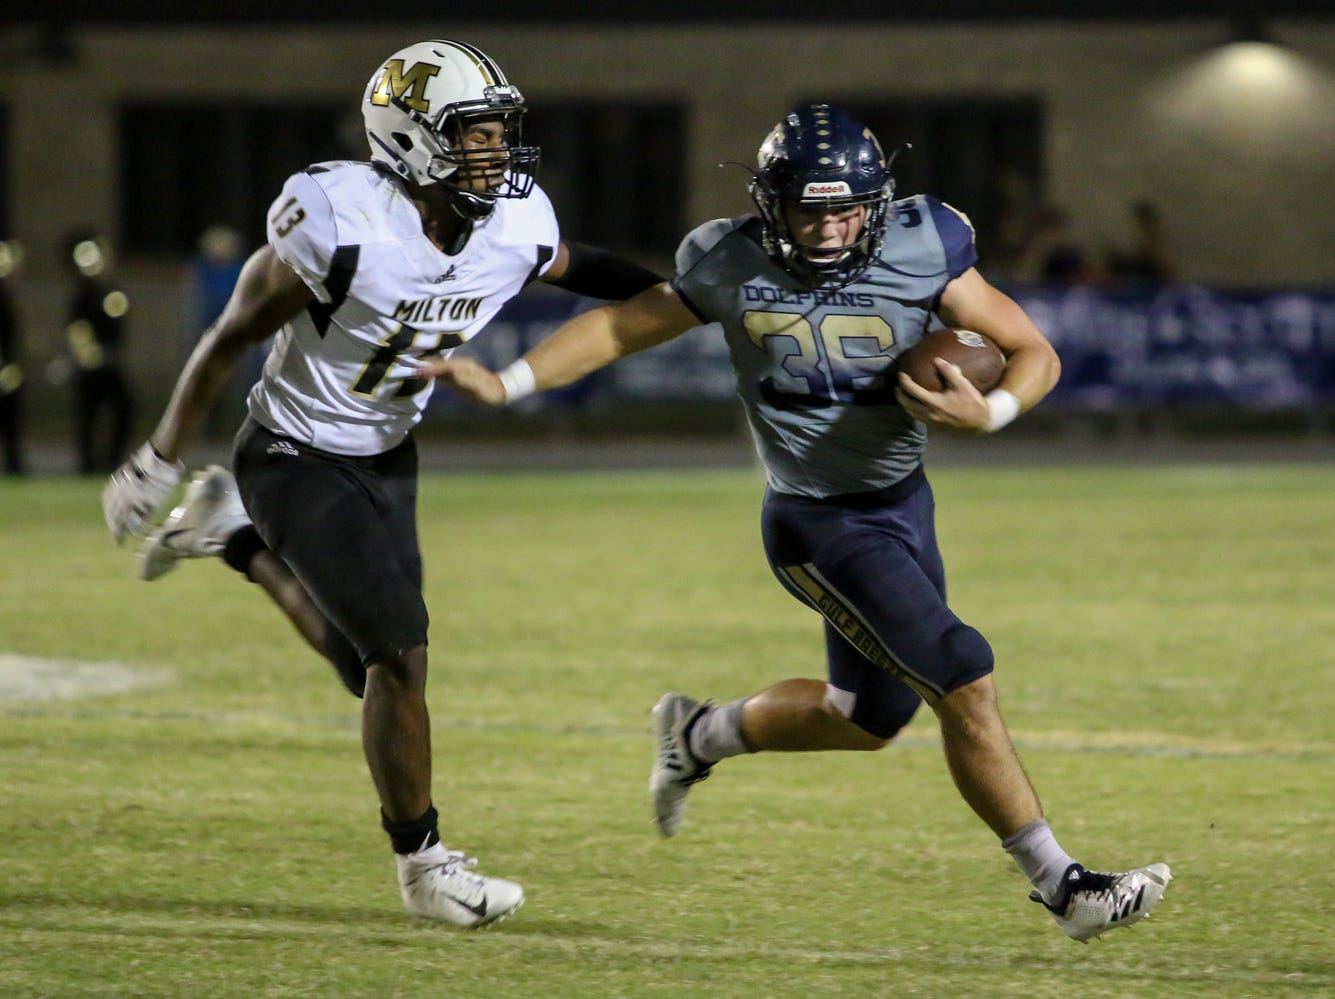 Gulf Breeze's Tyler Dittmer (36) stiff arms and gets away from Milton's Kameryn Hall in the District 2-6A game at Gulf Breeze High School on Friday, September 28, 2018.